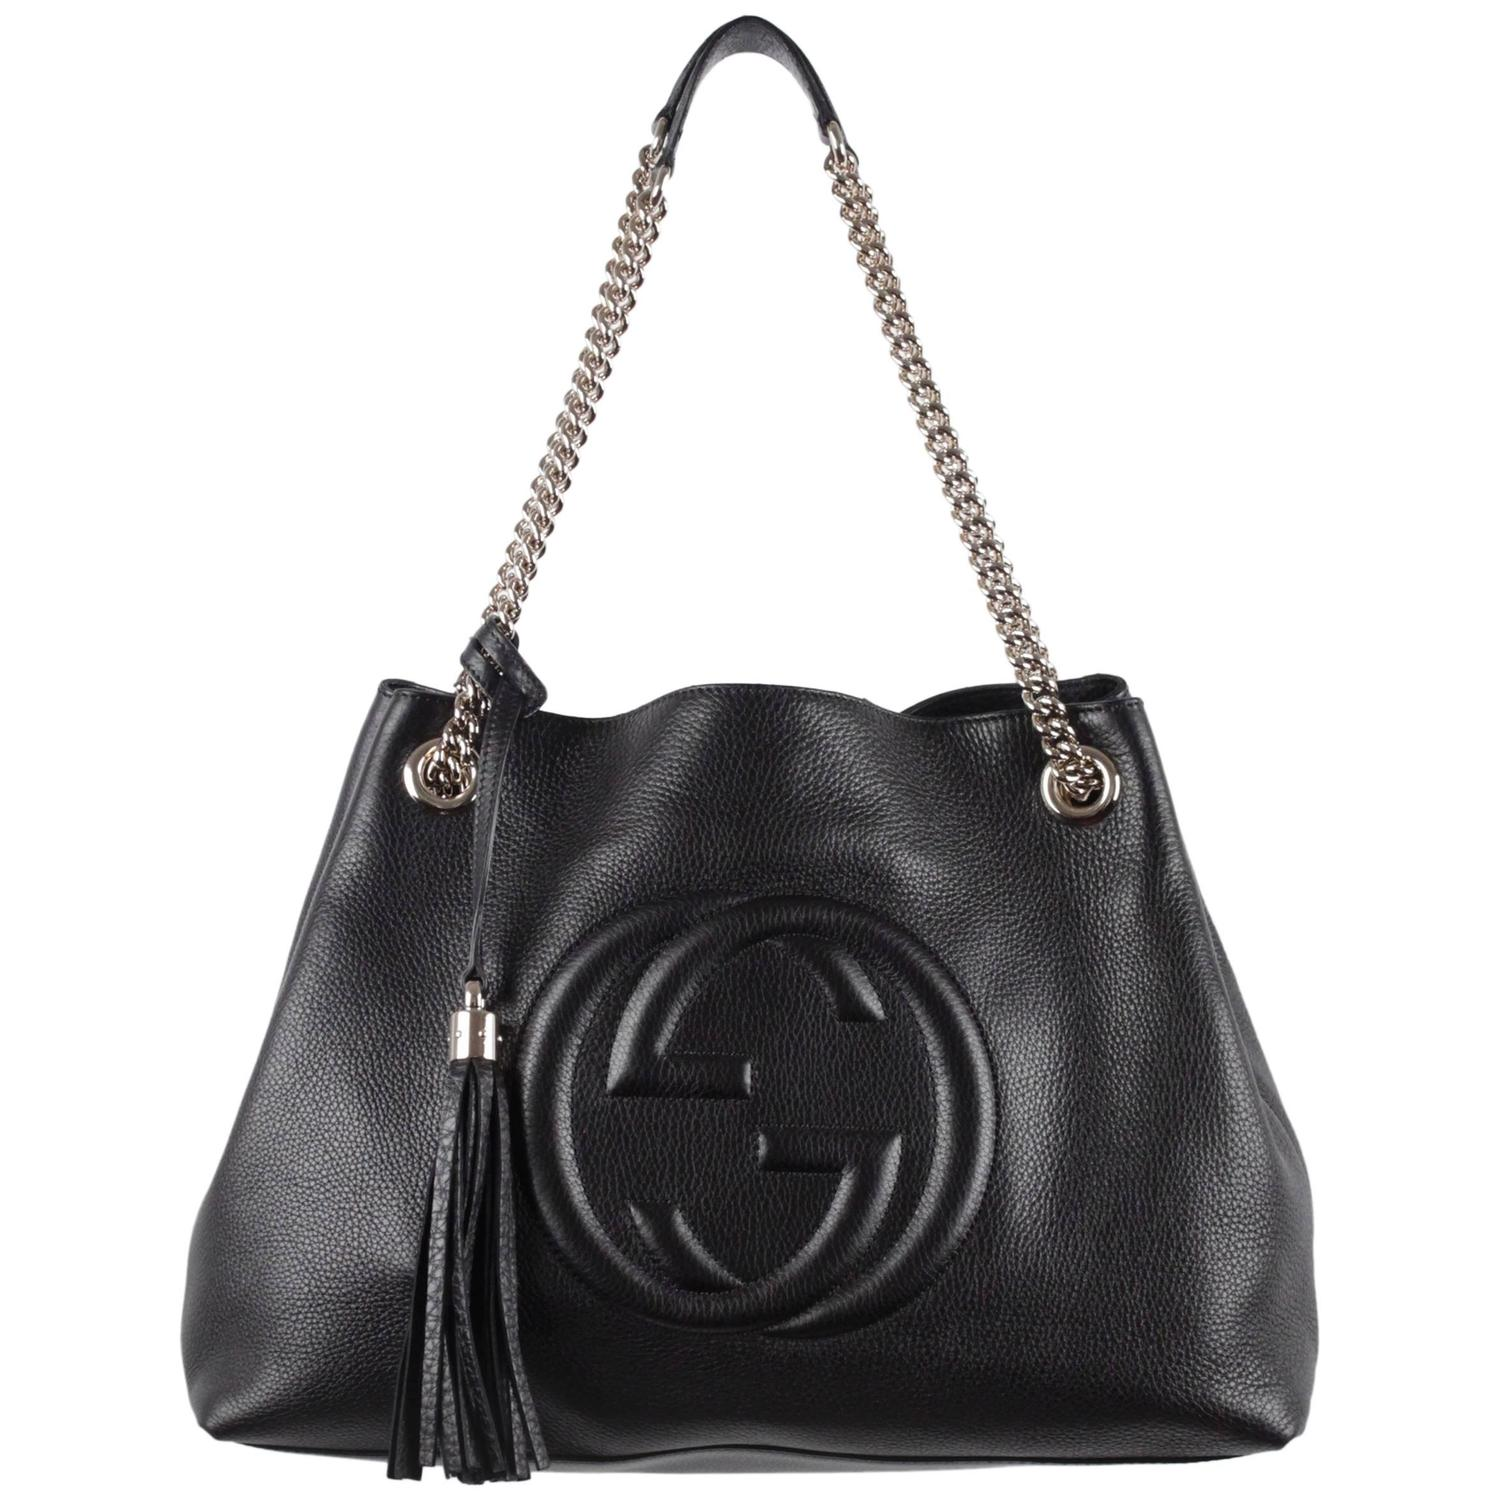 GUCCI Black Leather SOHO TOTE Shopping SHOULDER BAG w/ GG ...